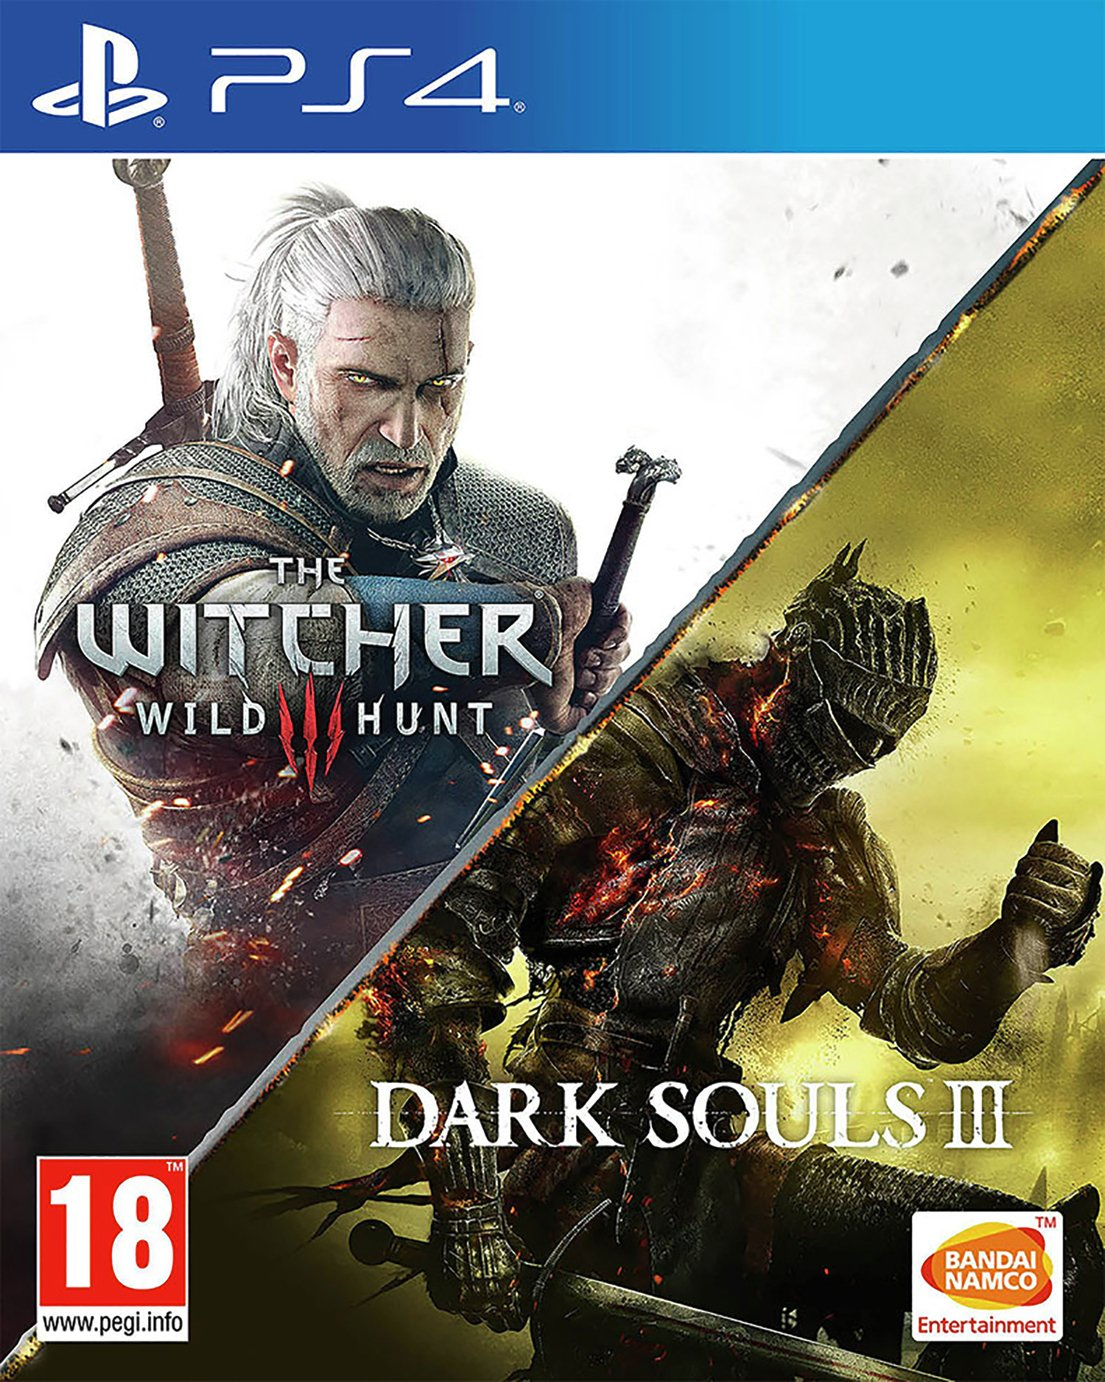 The Witcher 3 & Dark Souls 3 Compilation PS4 Game